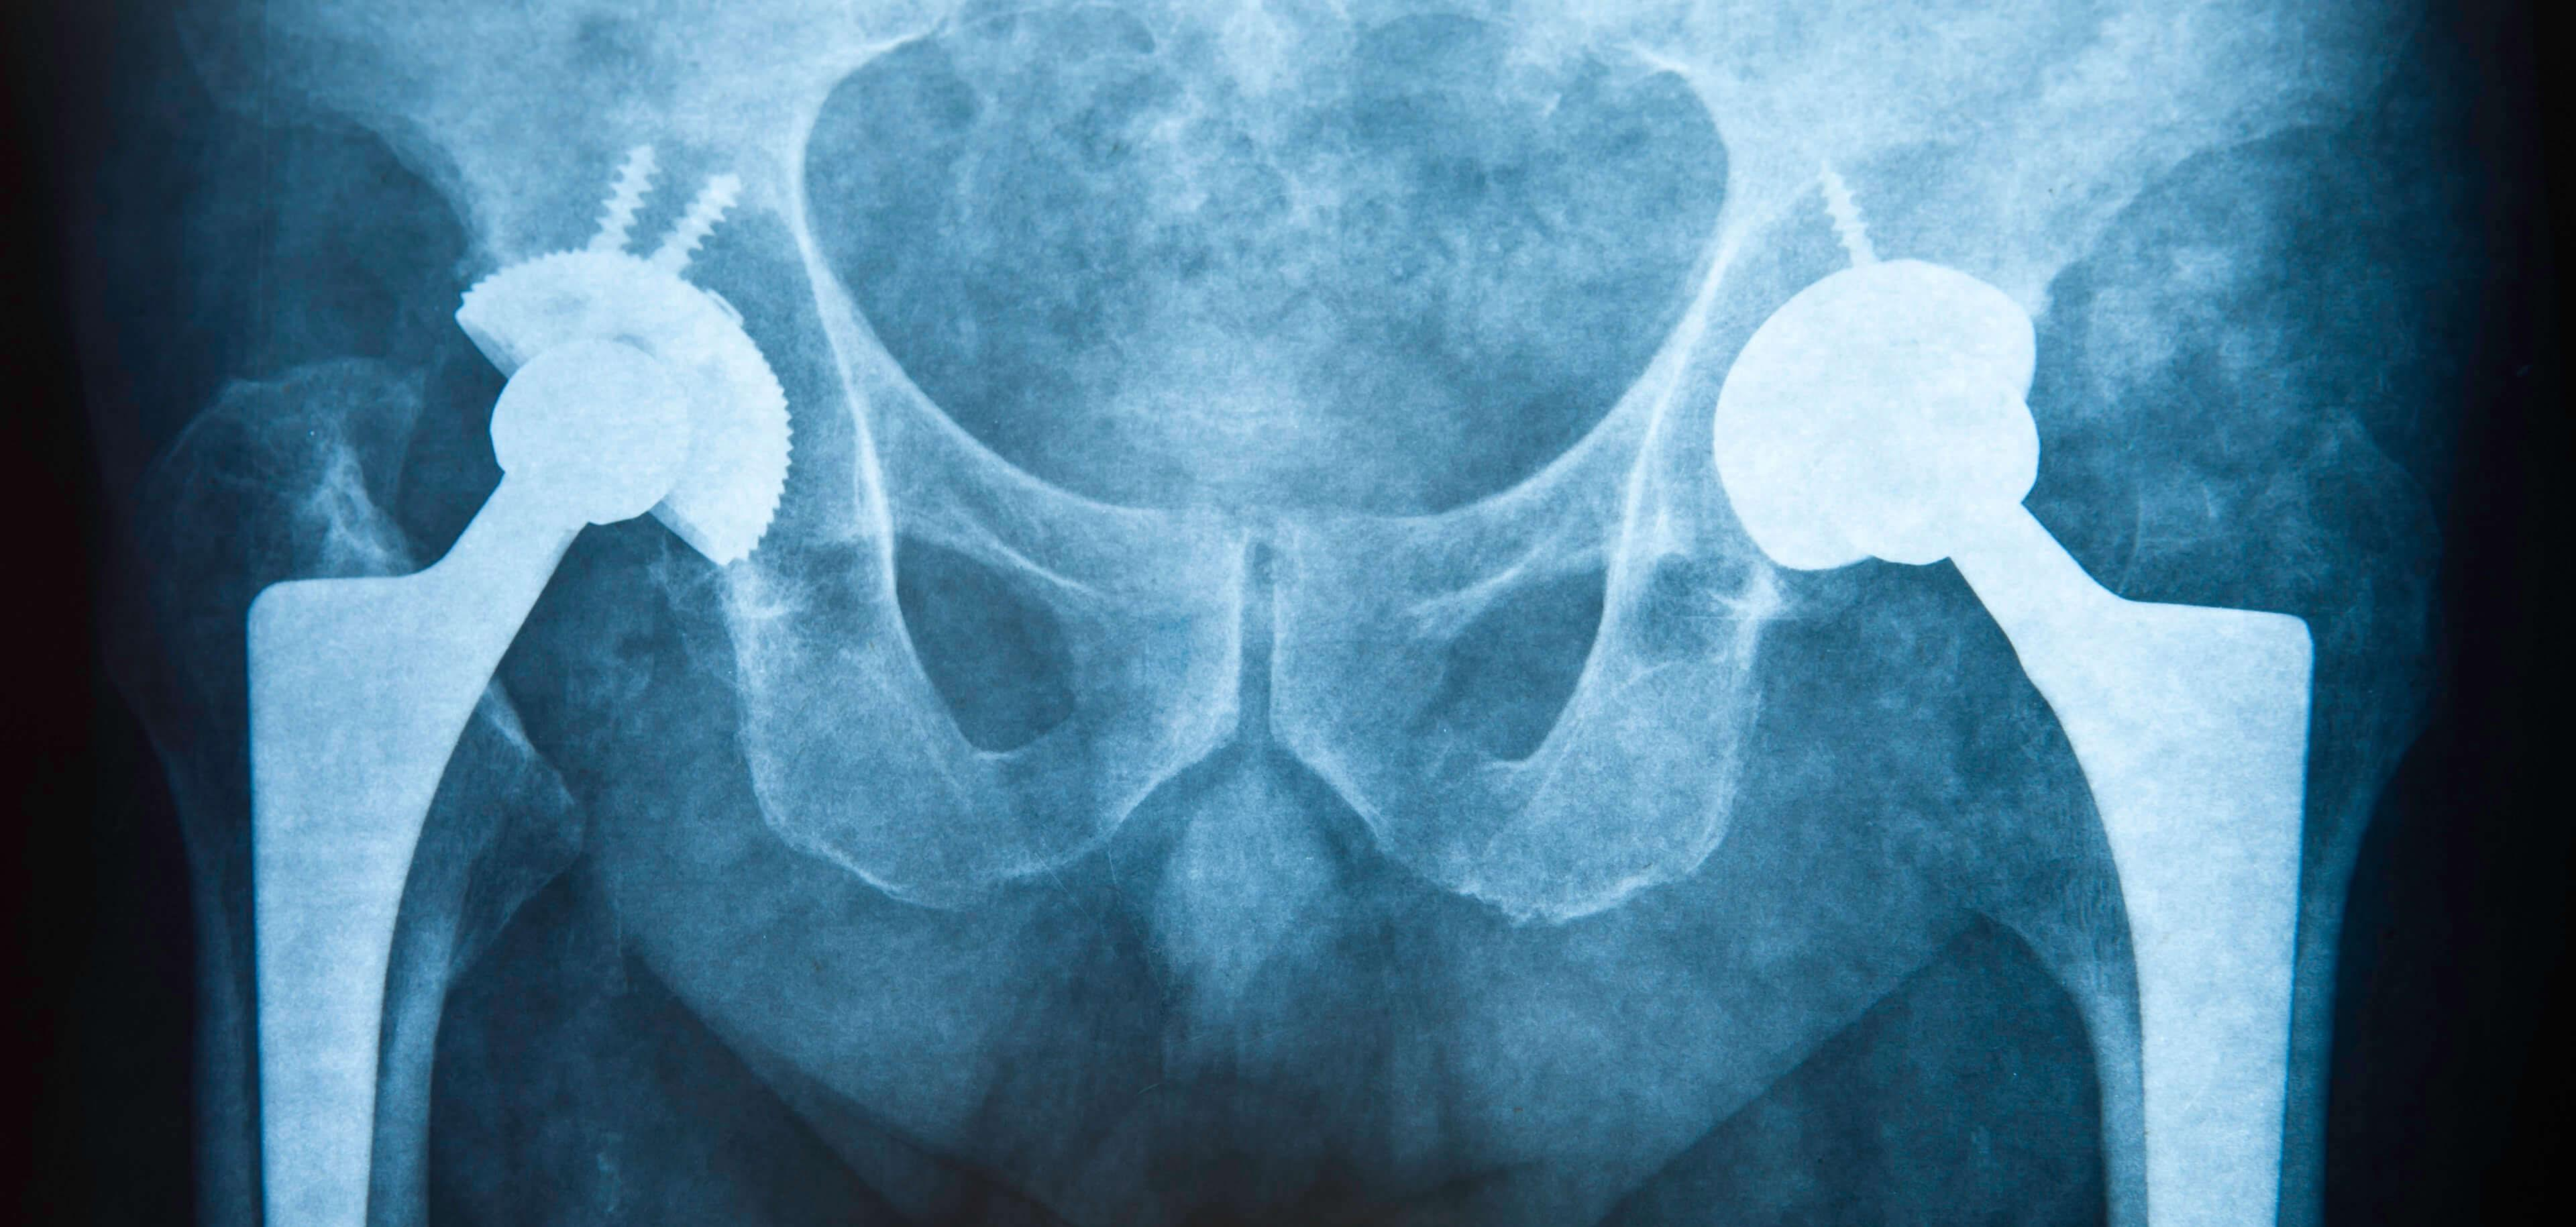 Metal hip implant